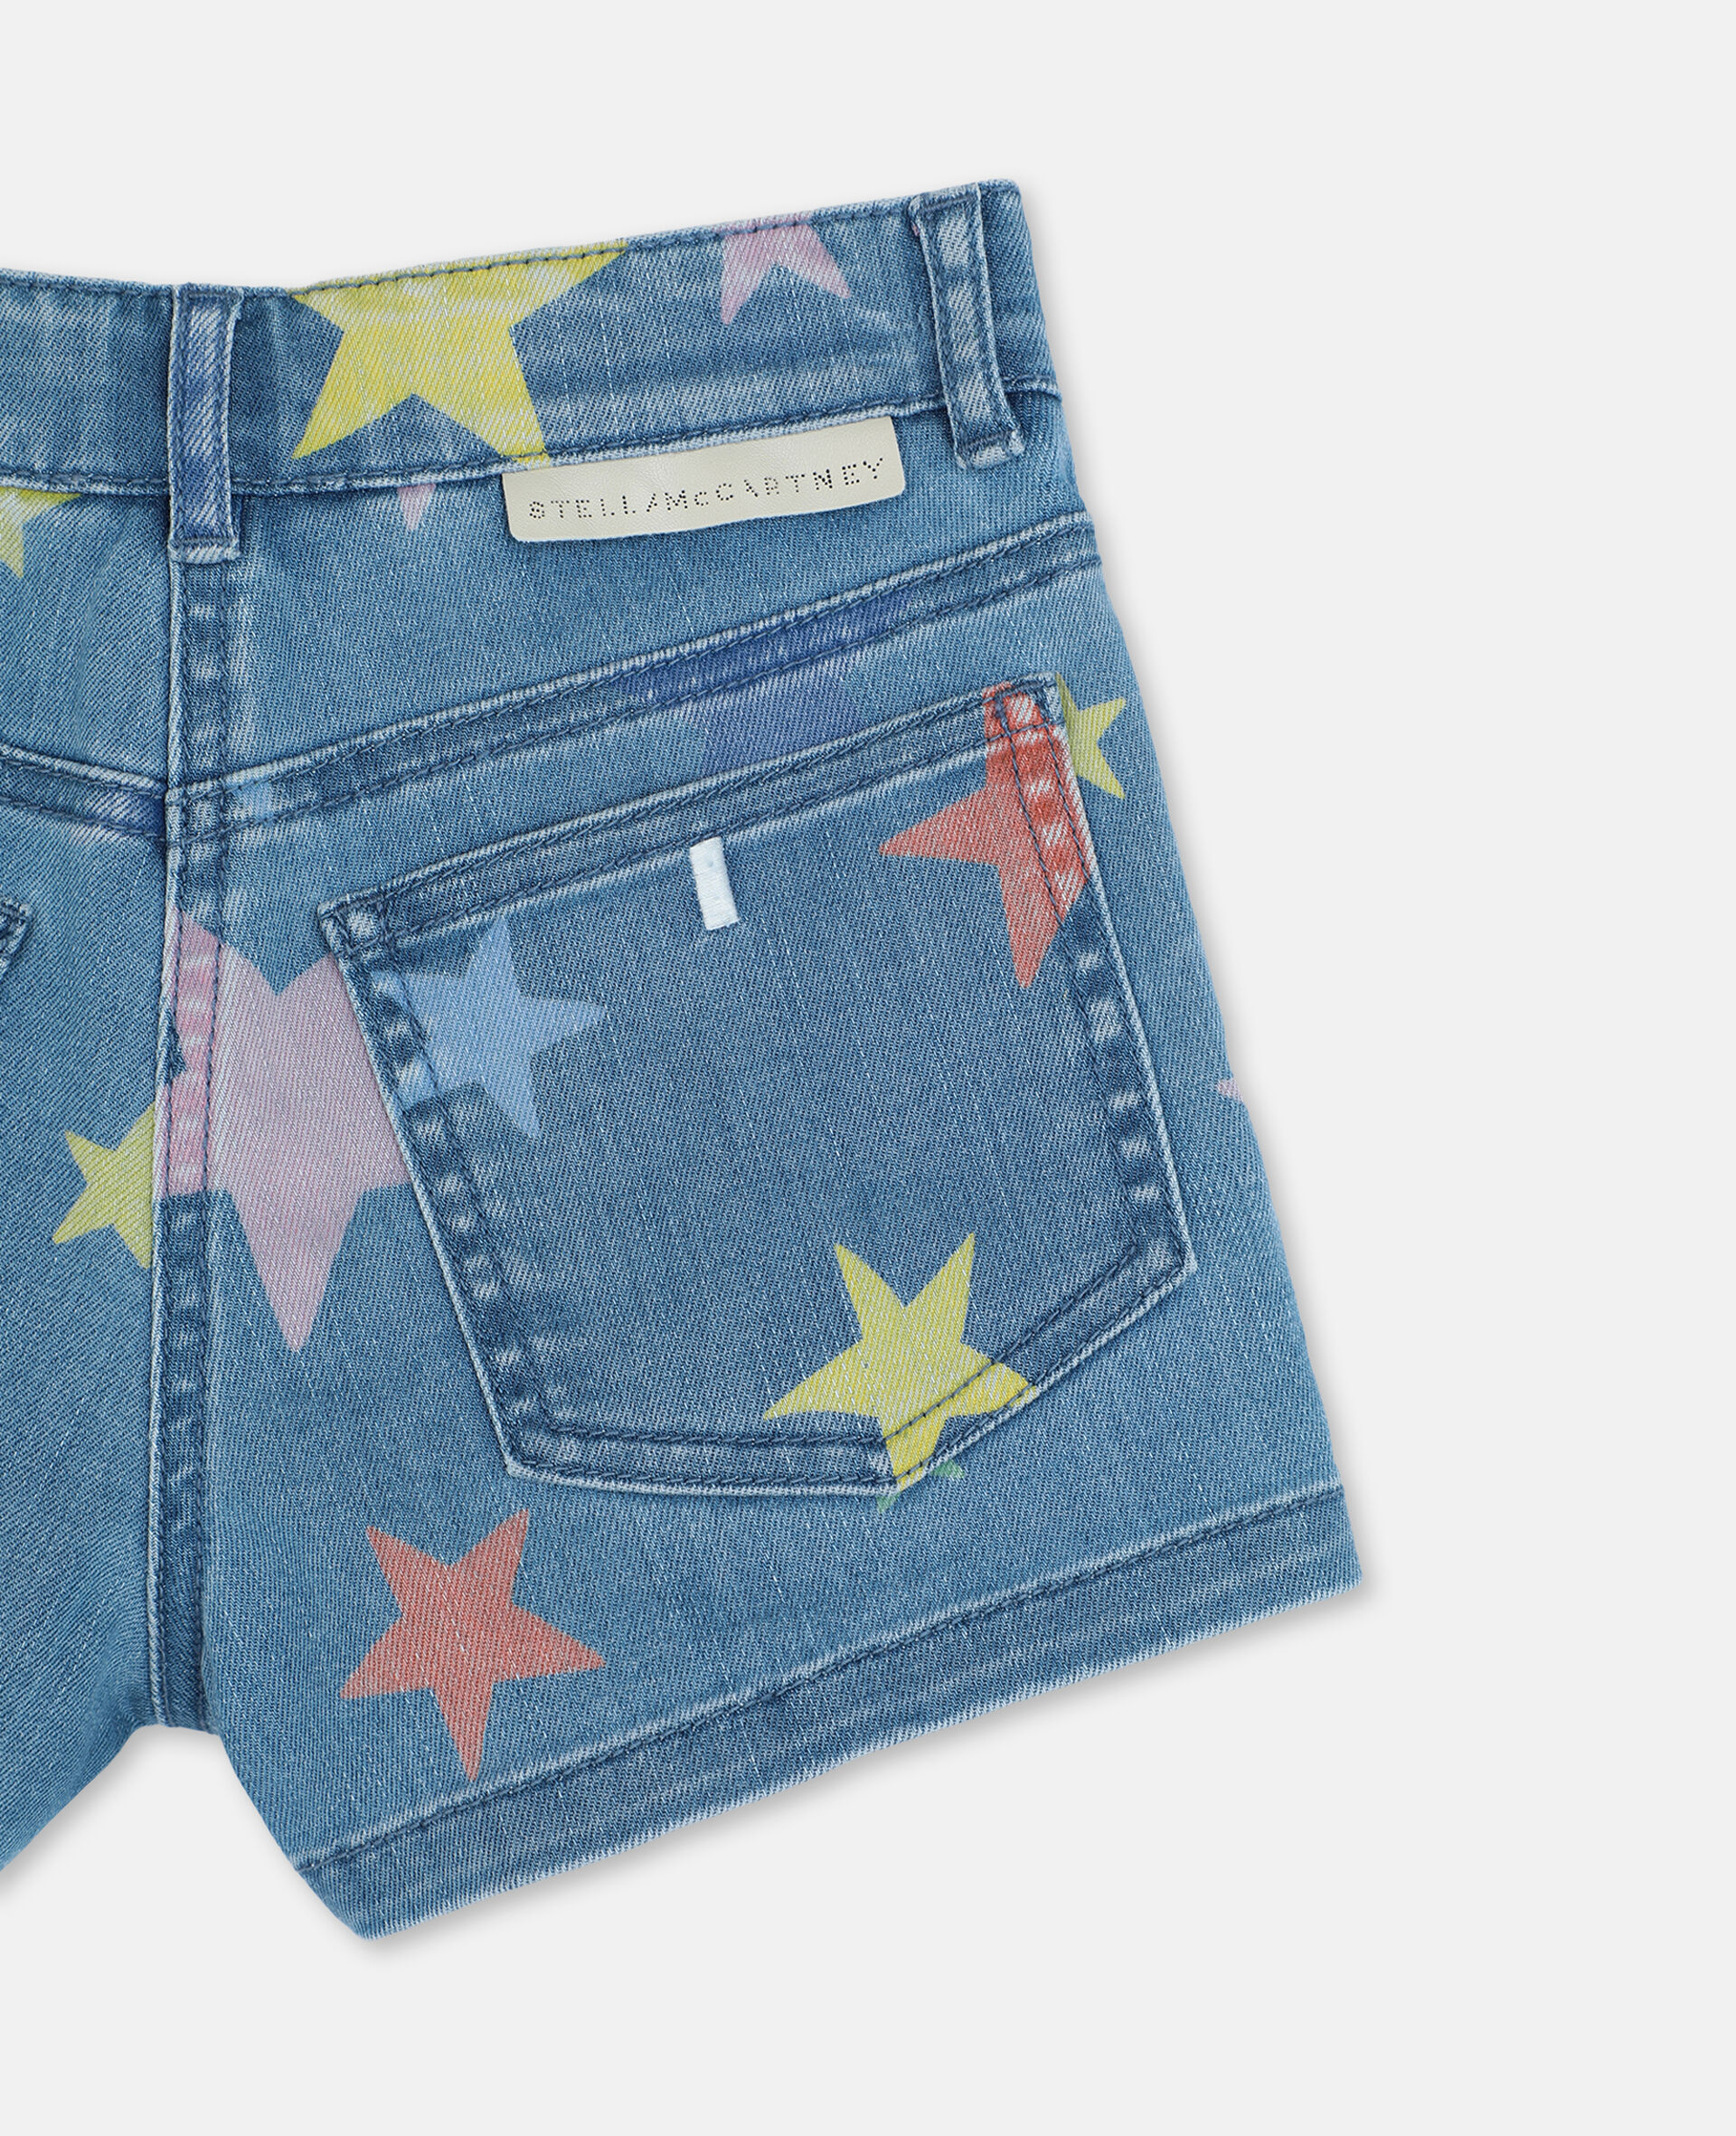 Multicolour Stars牛仔短裤 -Multicolored-large image number 2